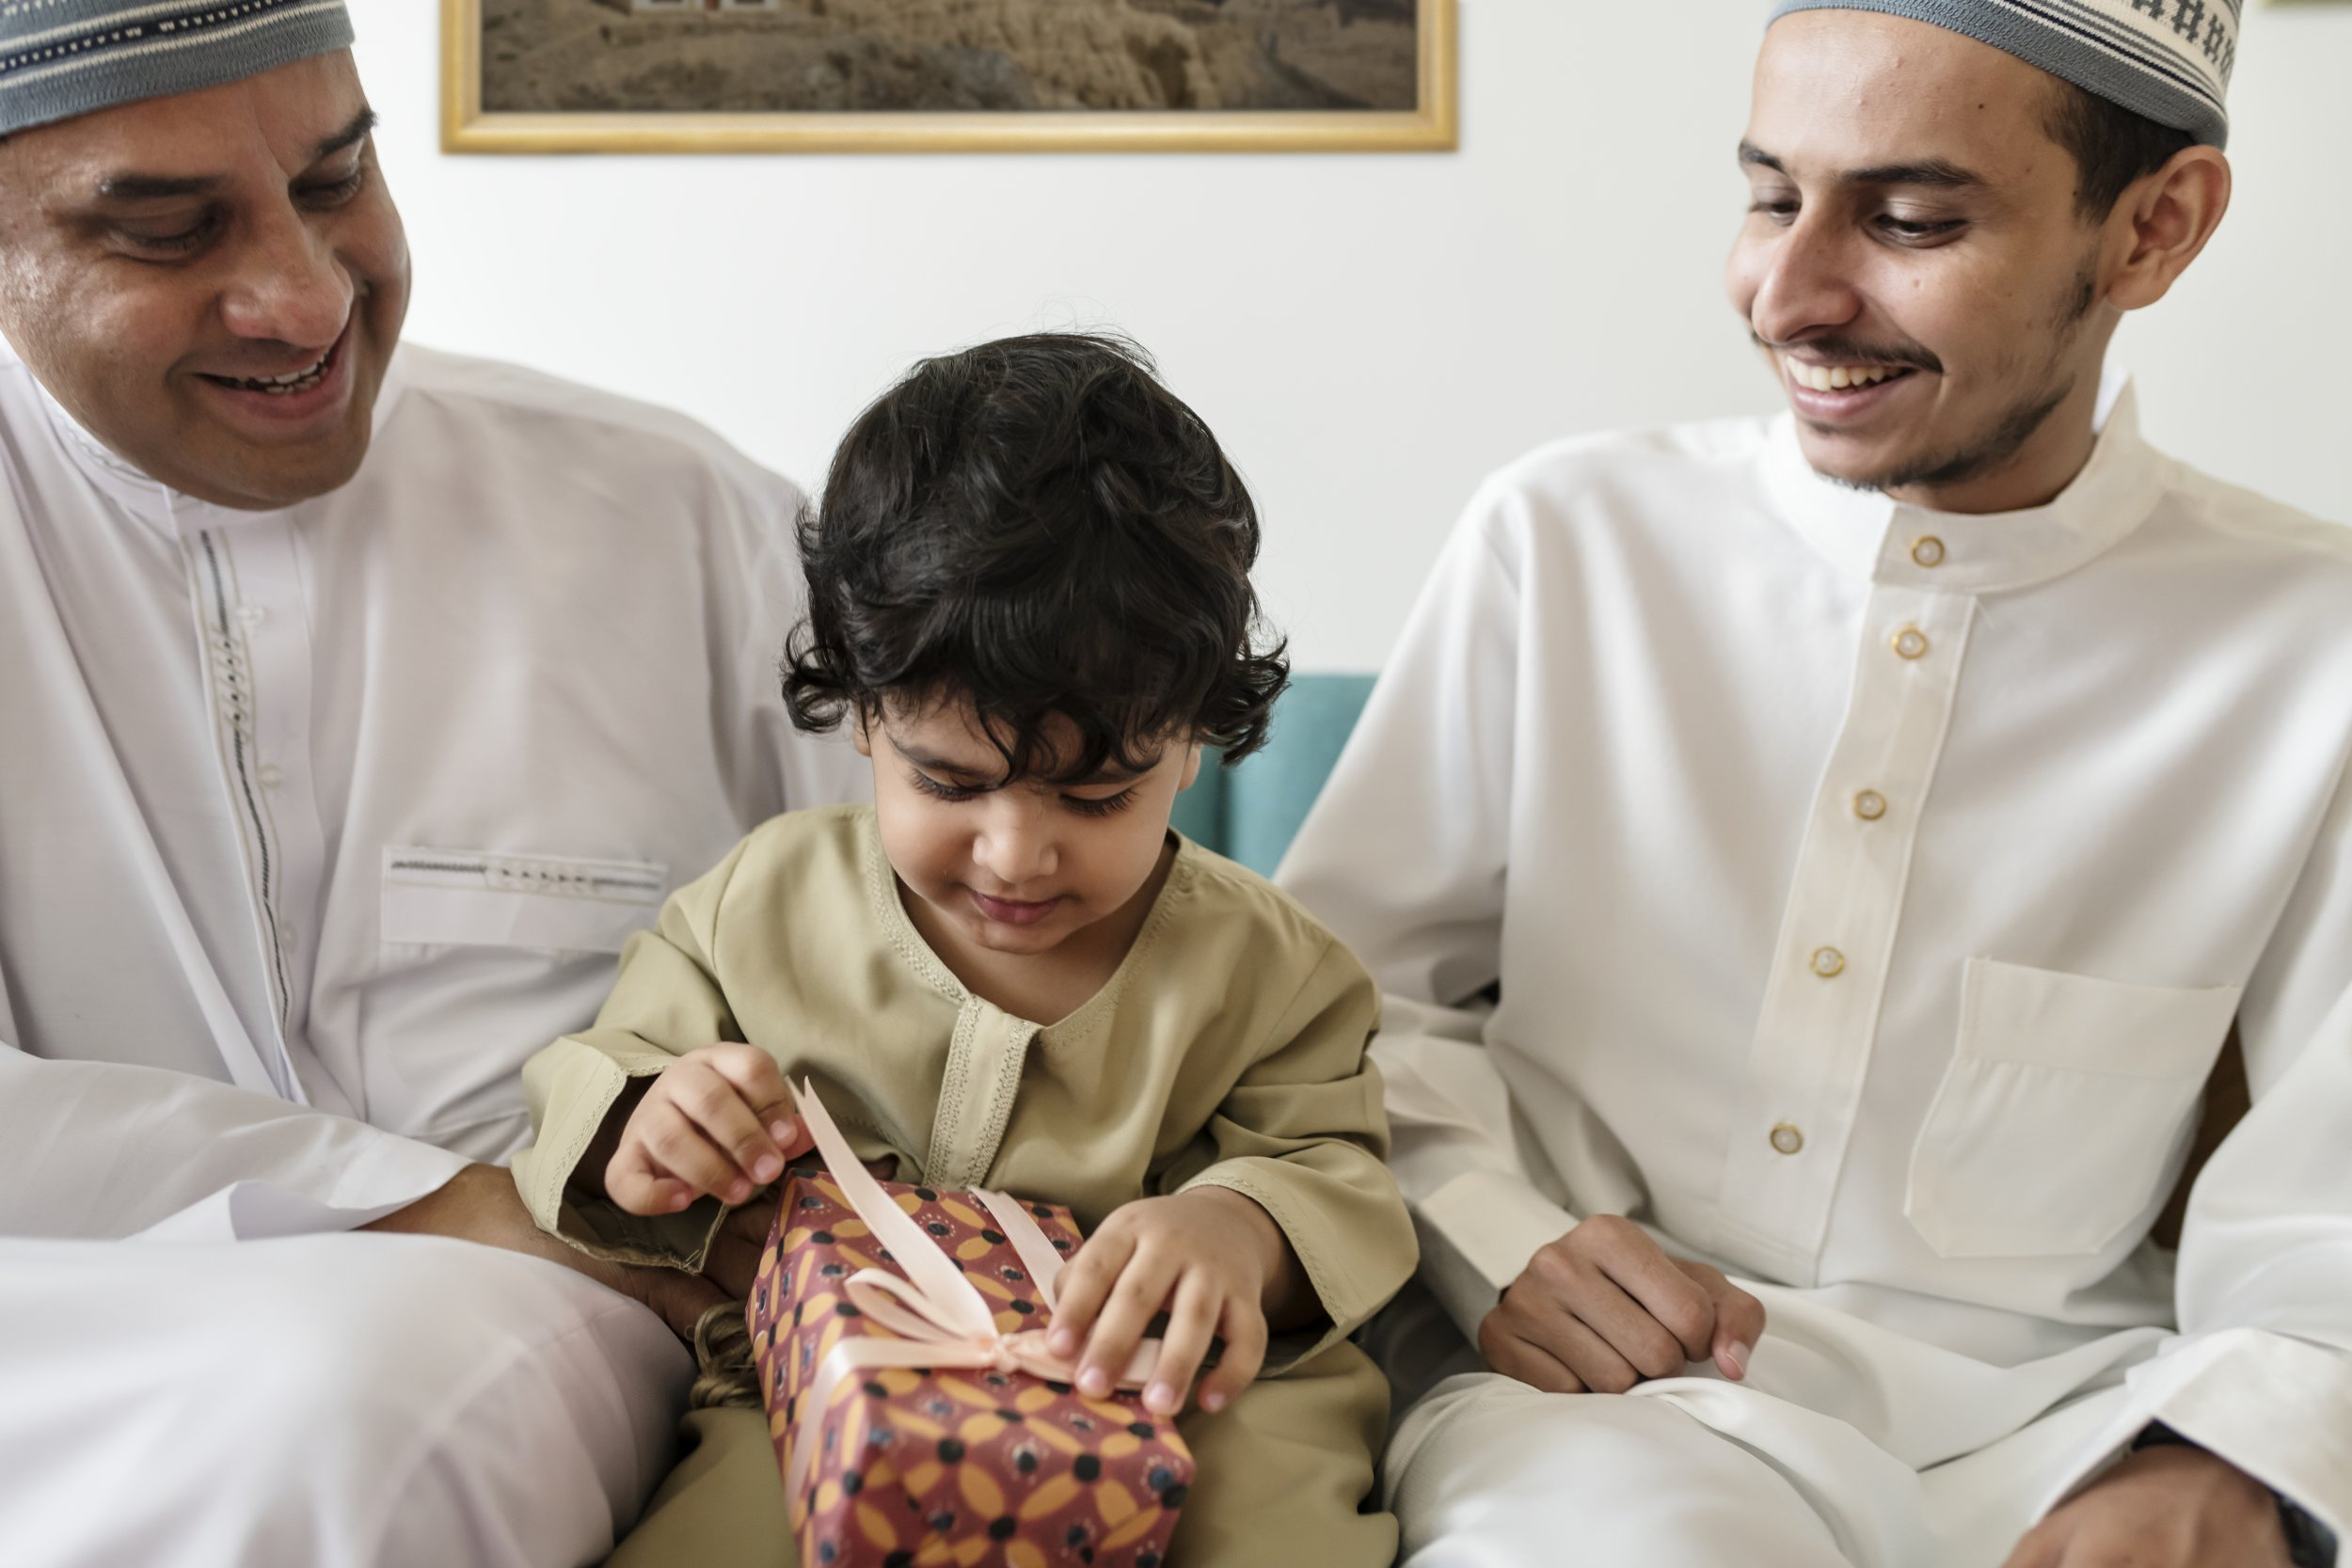 Ramadan 2019: Special Greetings and Wishes From American Muslims to